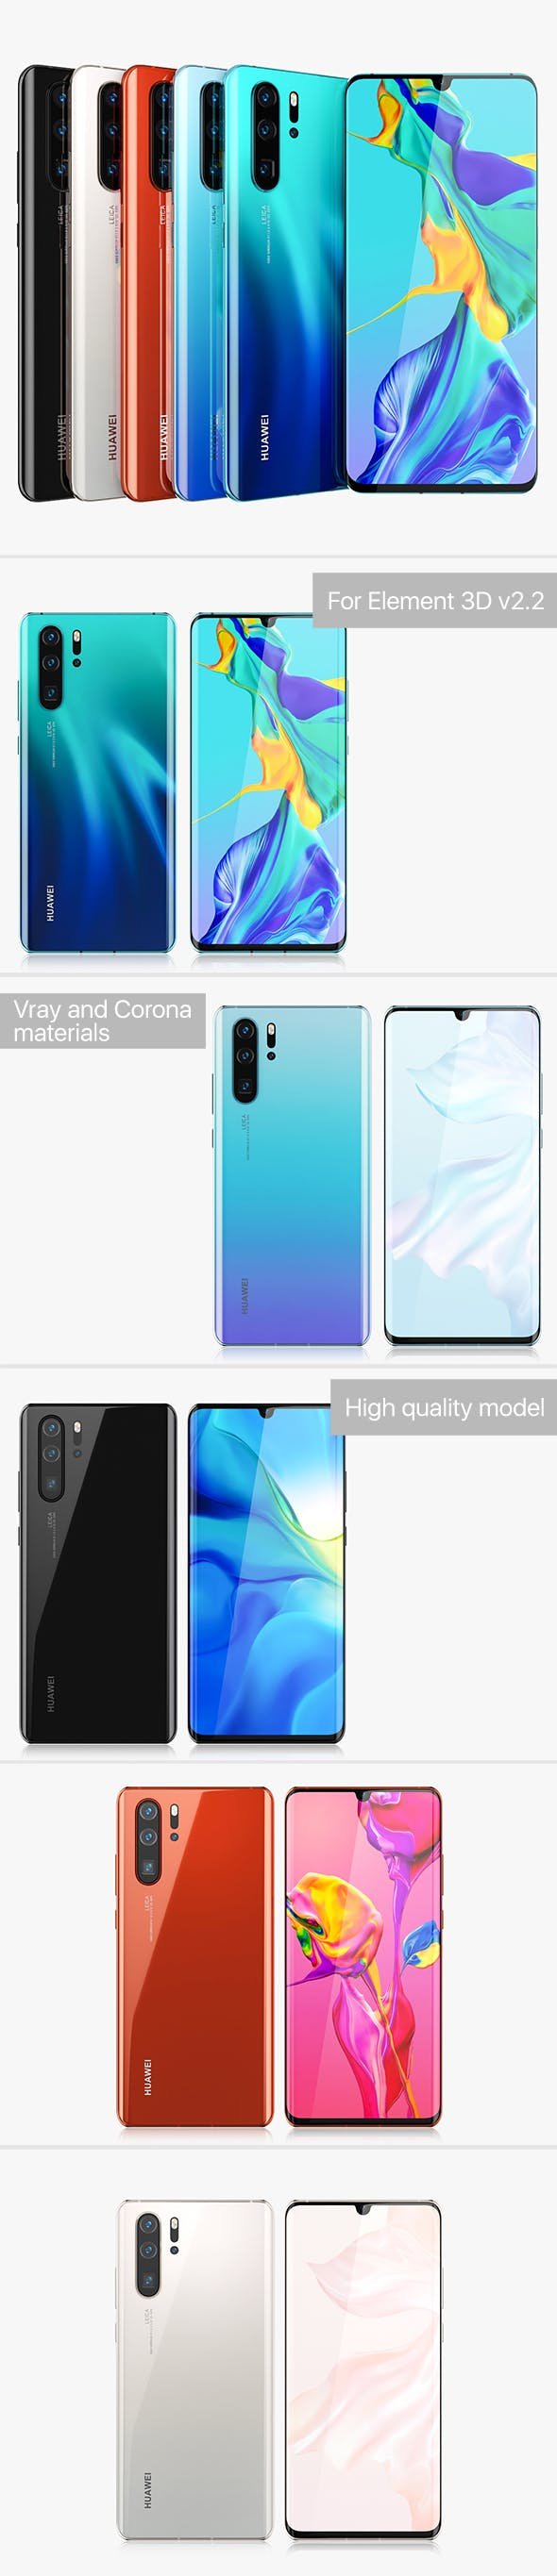 Huawei P30 Pro ALL Colors - 3DOcean Item for Sale